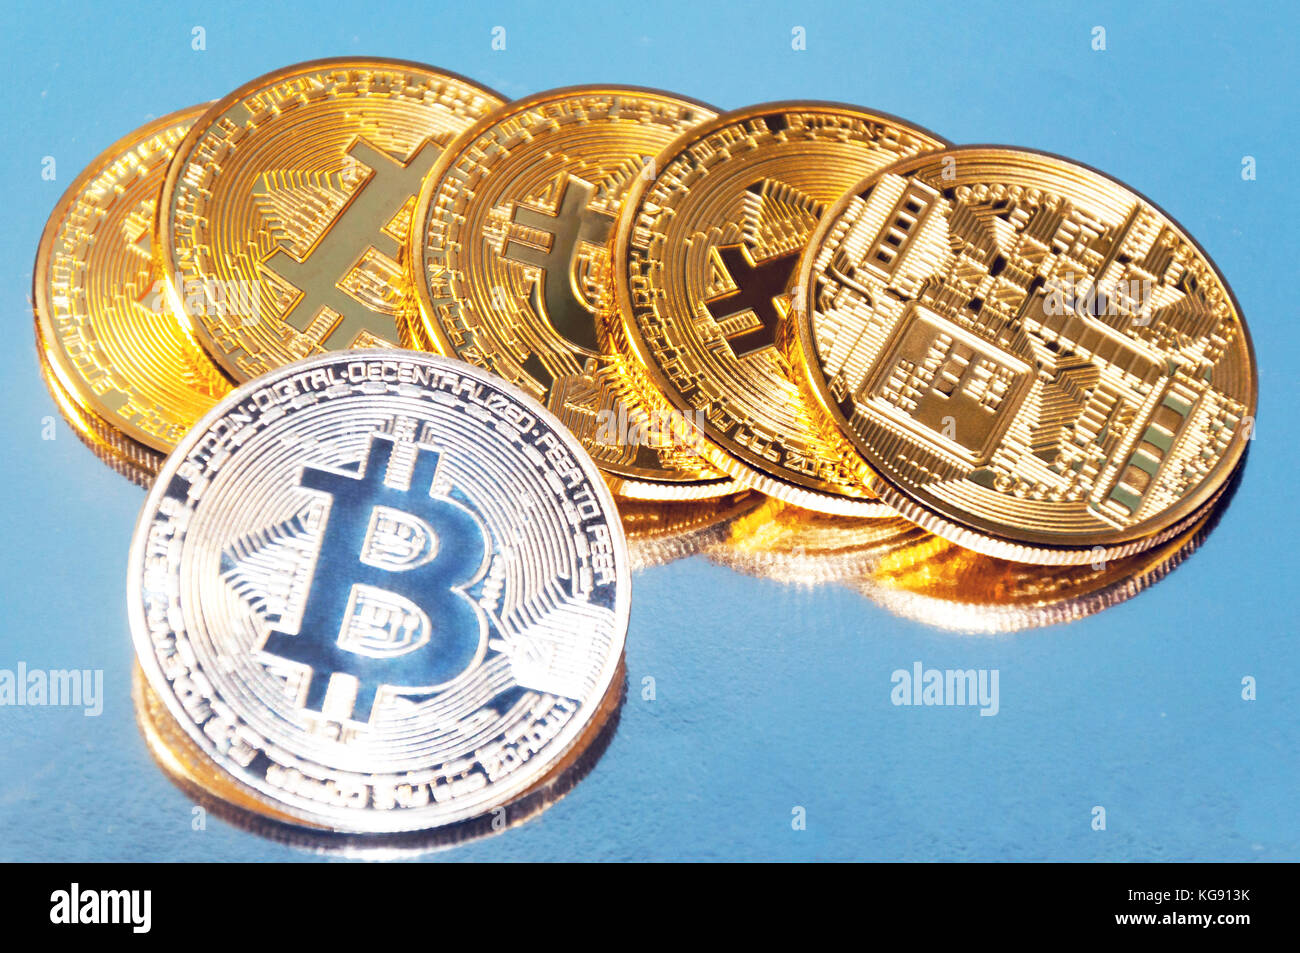 Several coins of bitcoins. Bright glow, toning and blurring. The concept of crypto currency - Stock Image